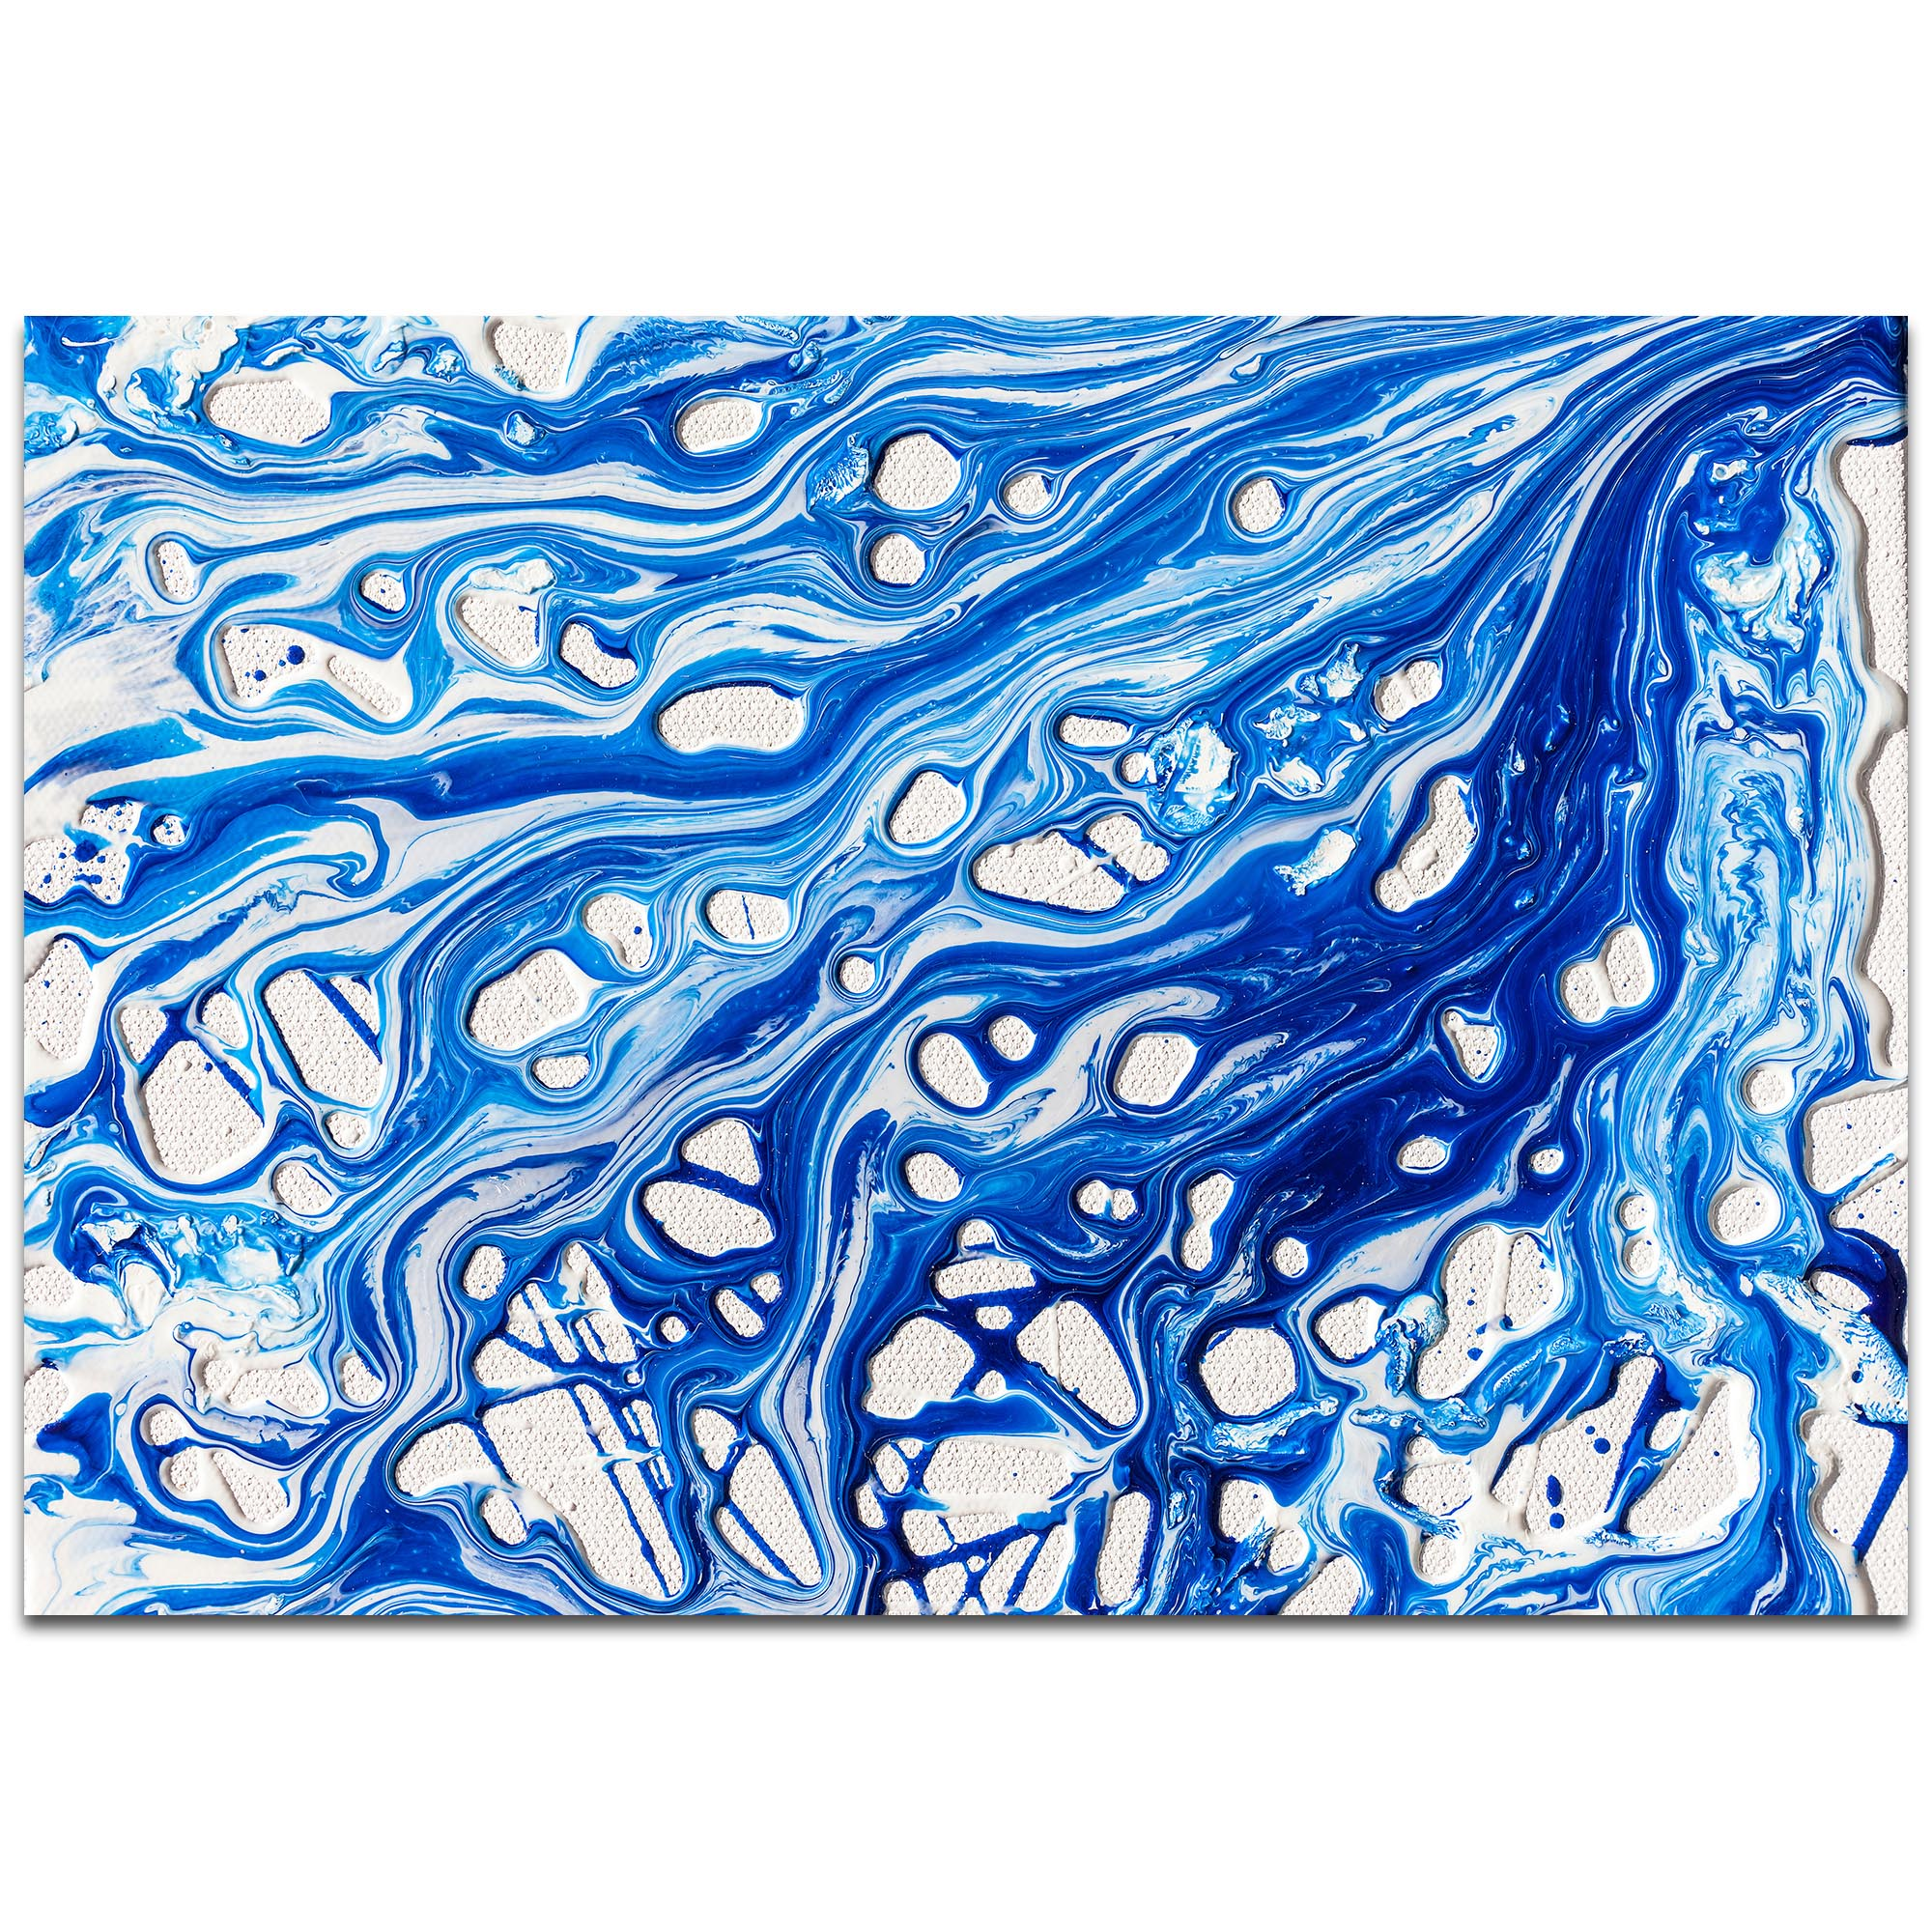 Abstract Wall Art 'Coastal Waters 2' - Colorful Urban Decor on Metal or Plexiglass